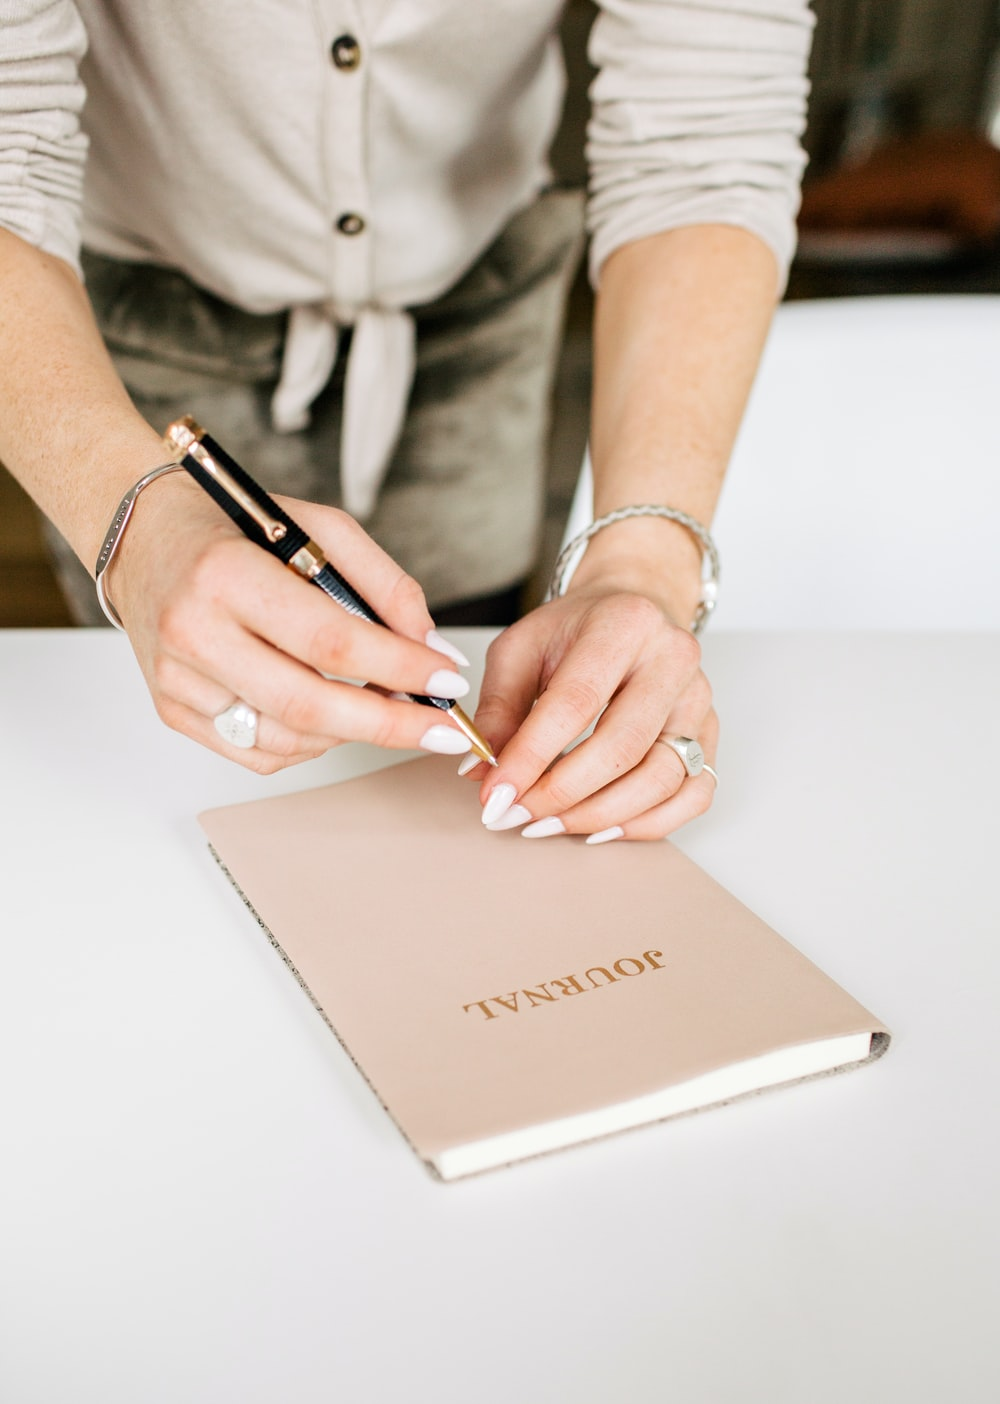 person holding pen near journal book